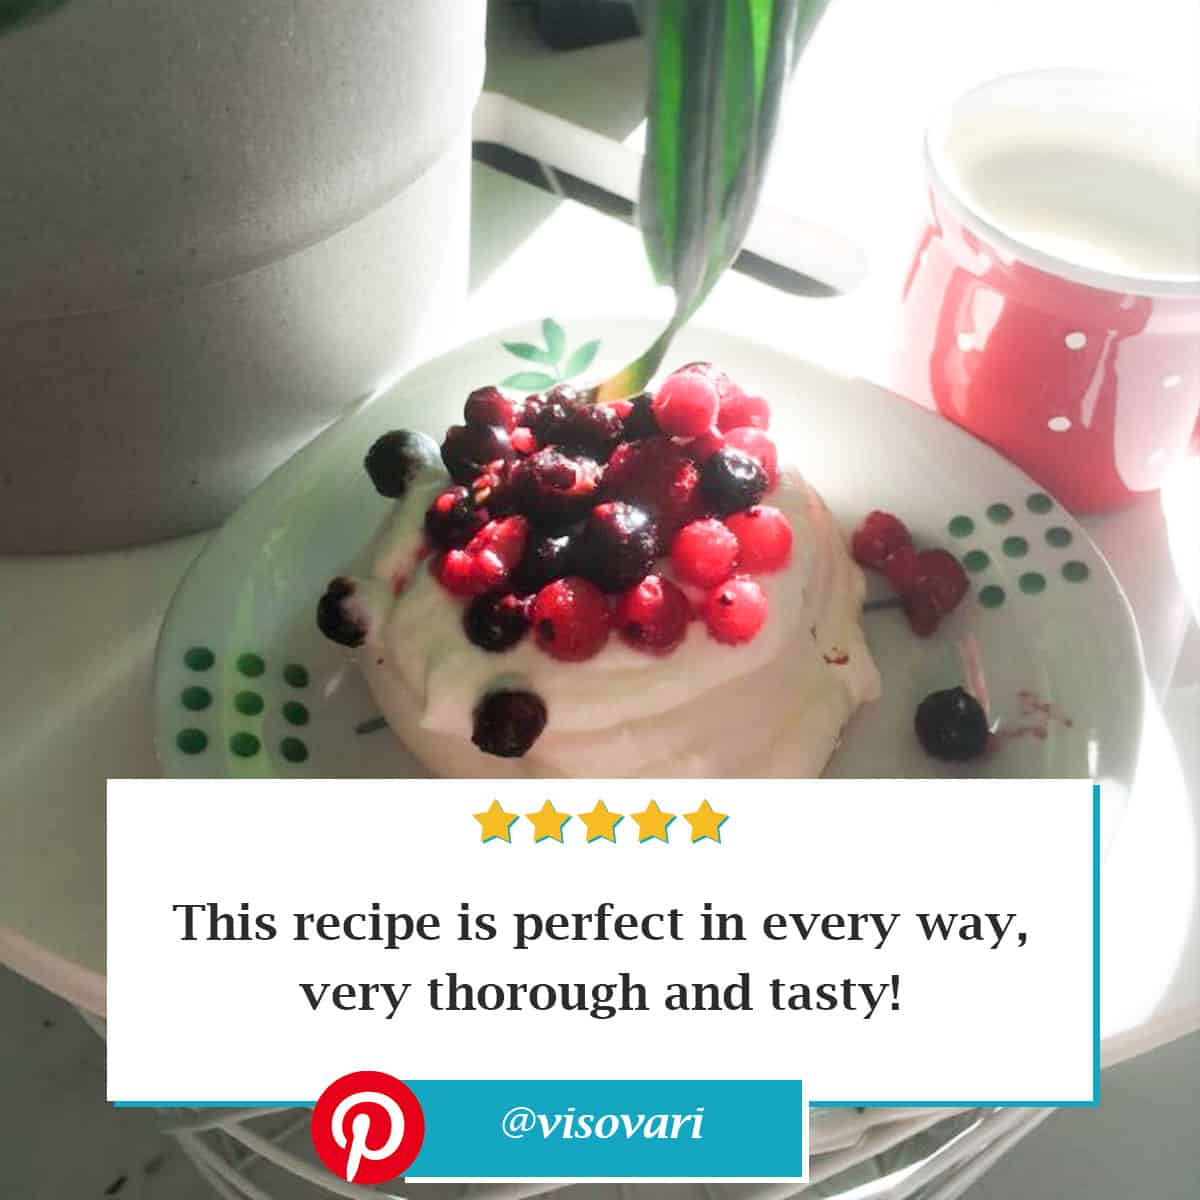 "Reviewer photo of the mini pavlova recipe on a white and green dish with berry topping and the text overlay: ""This recipe is perfect in every way, very thorough and tasty!"" with their Pinterest username: @visovari"